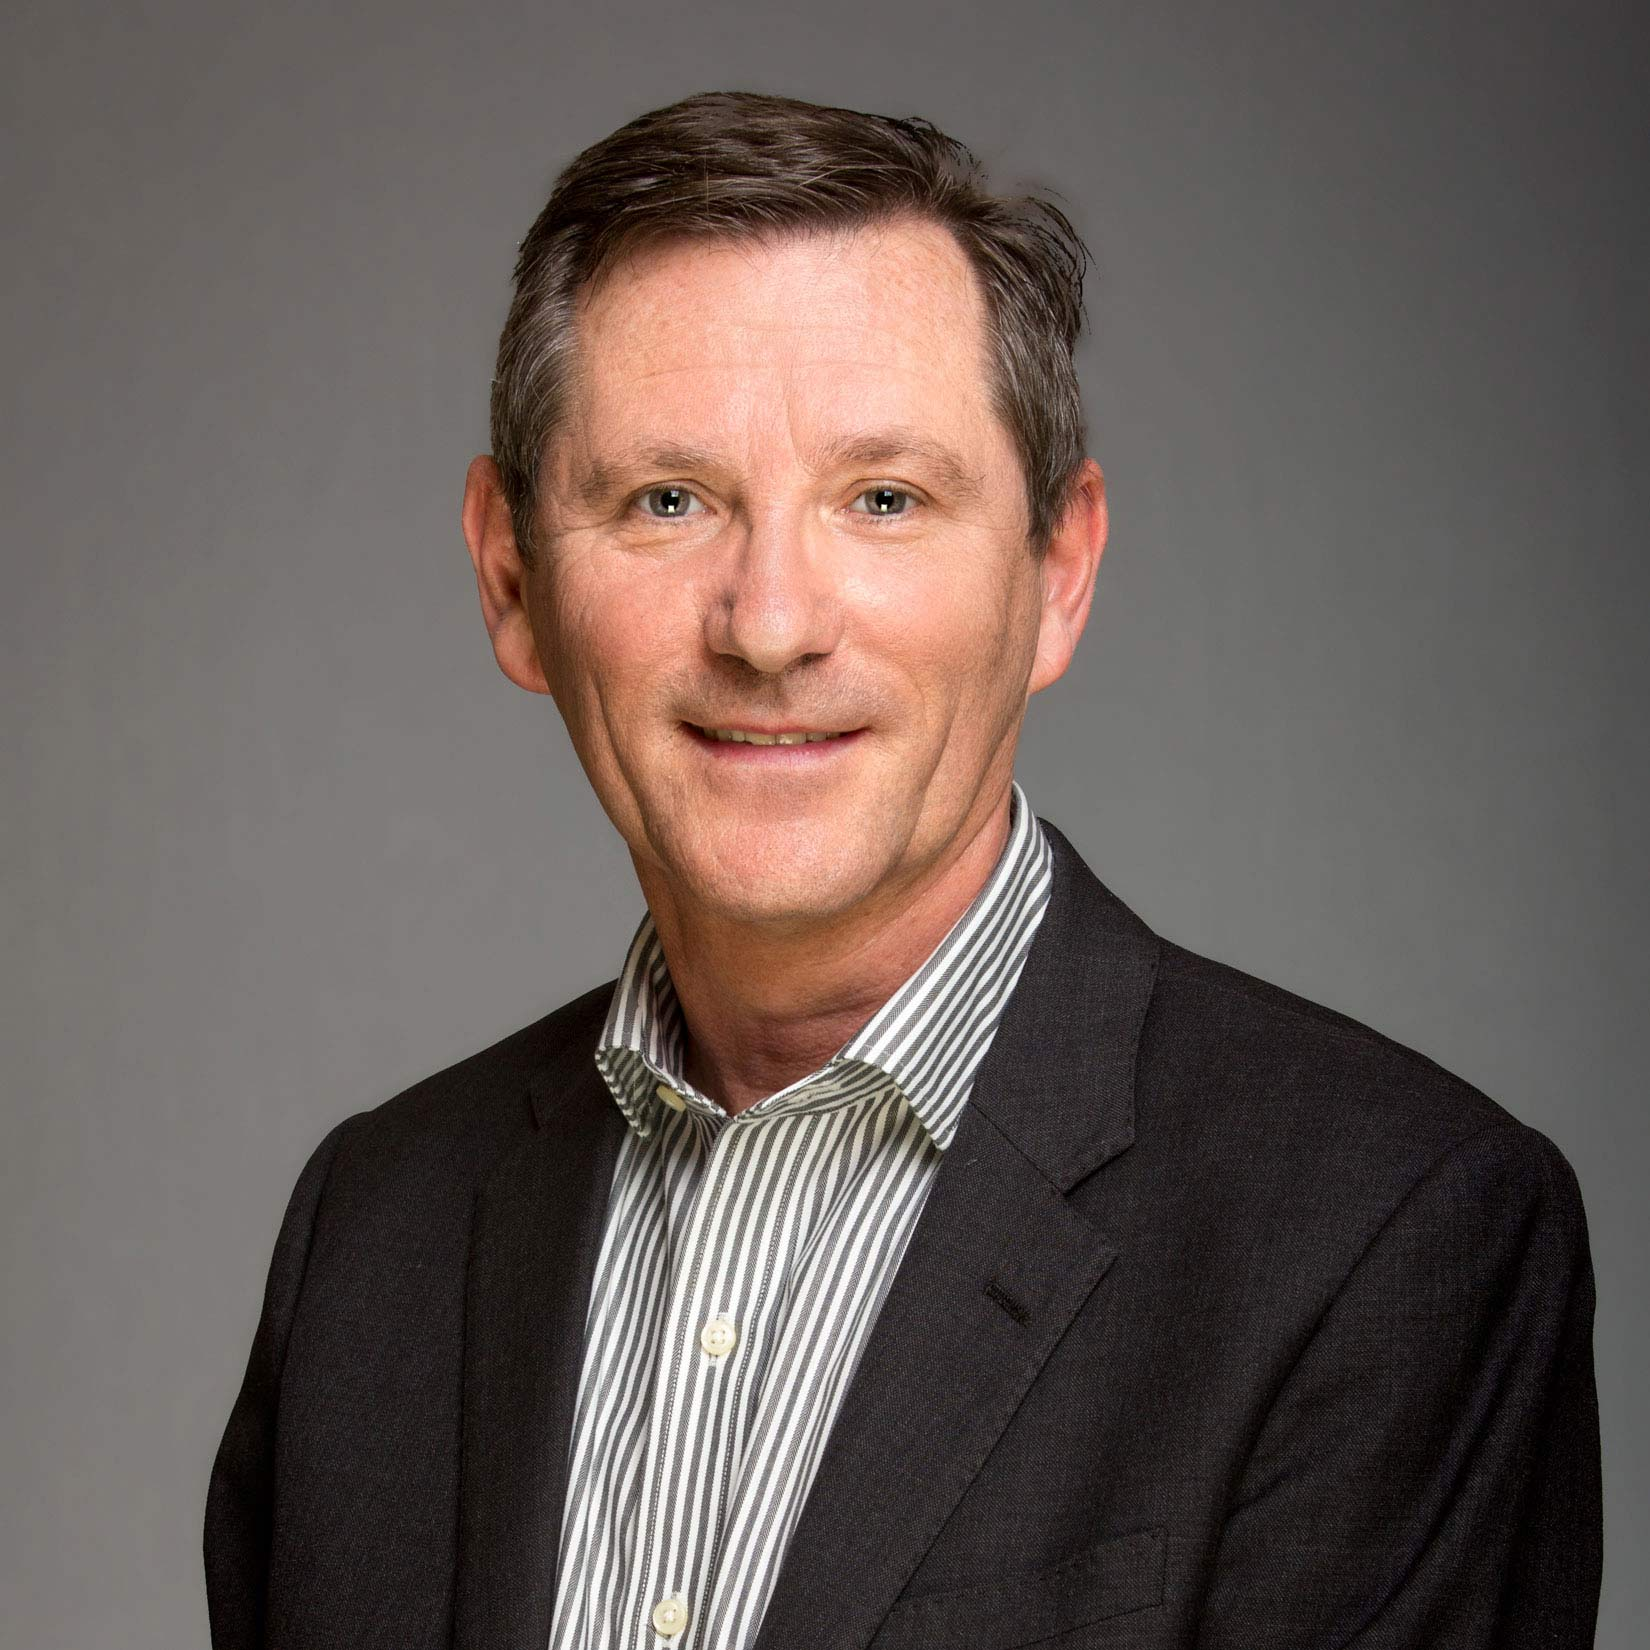 Headshot of businessman with shirt and jacket against a grey background taken for his Linkedin Profile